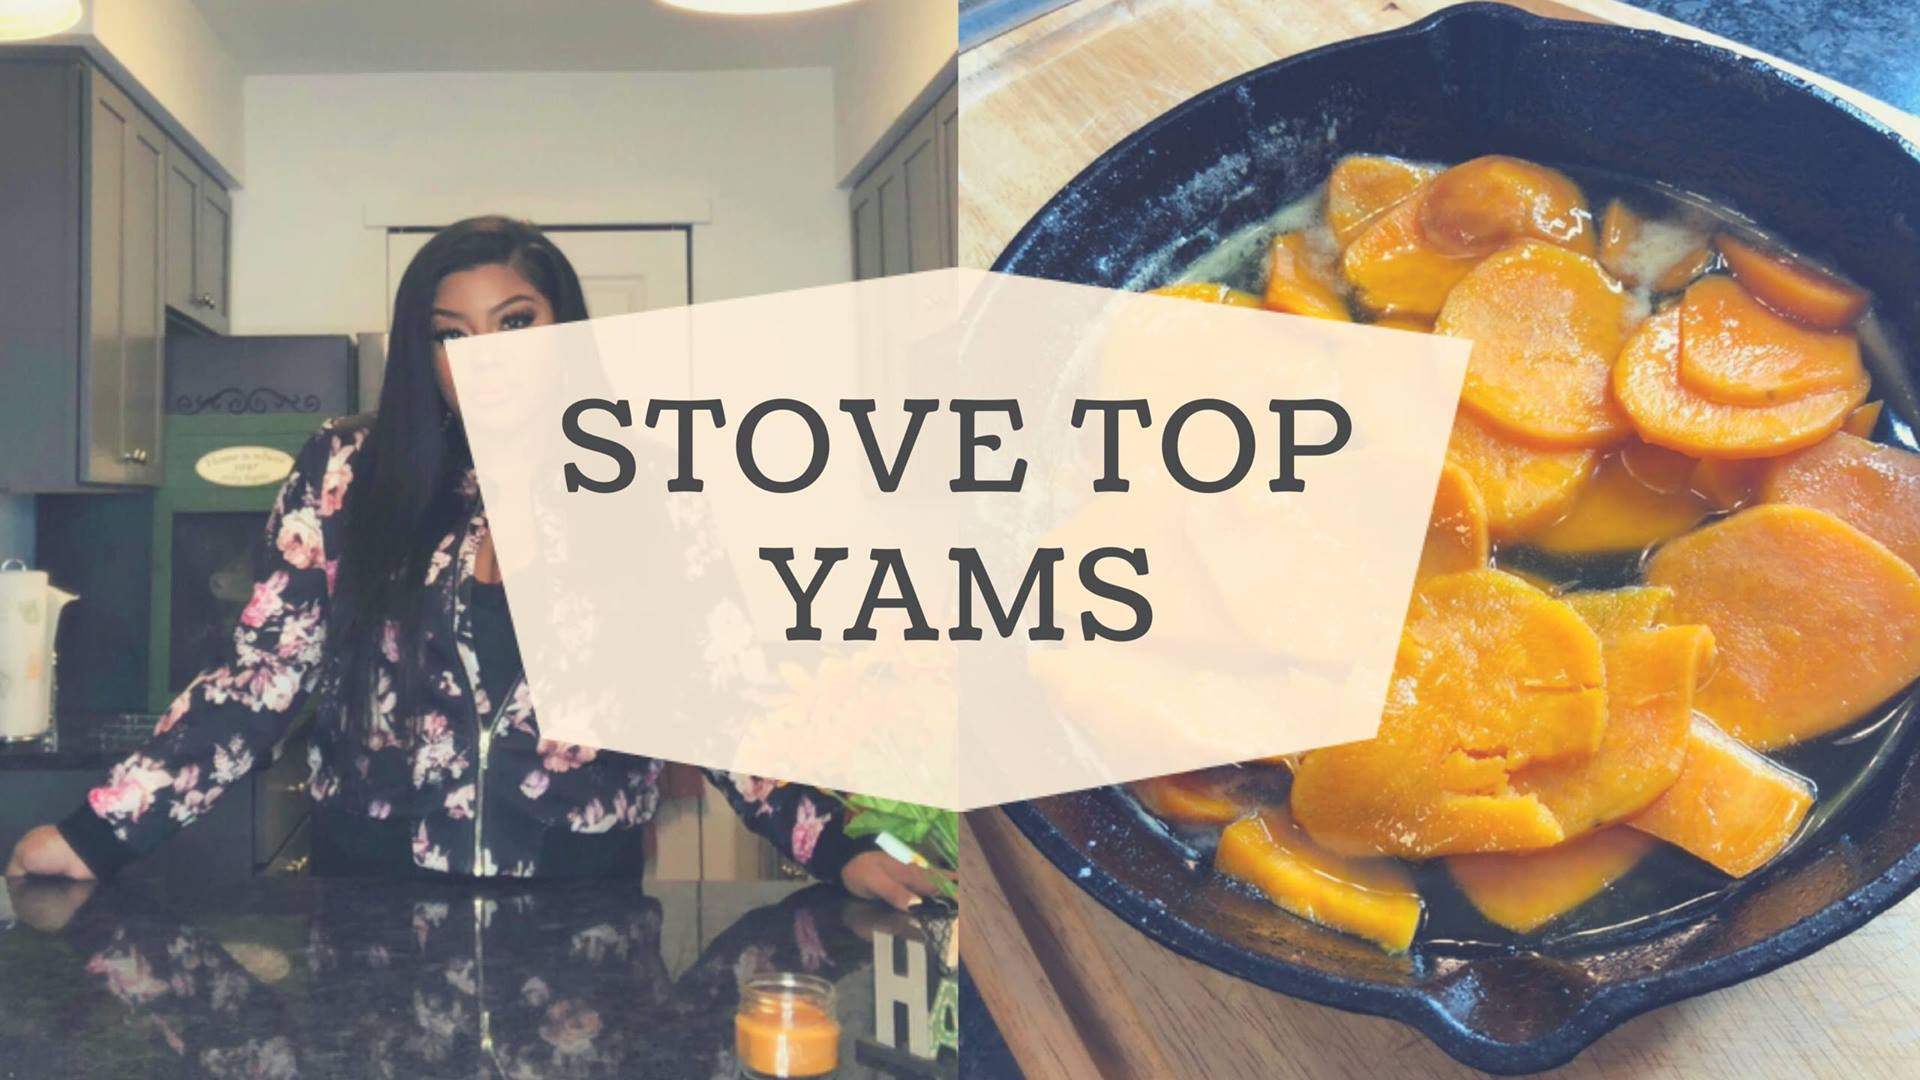 How To Make Stove Top yams